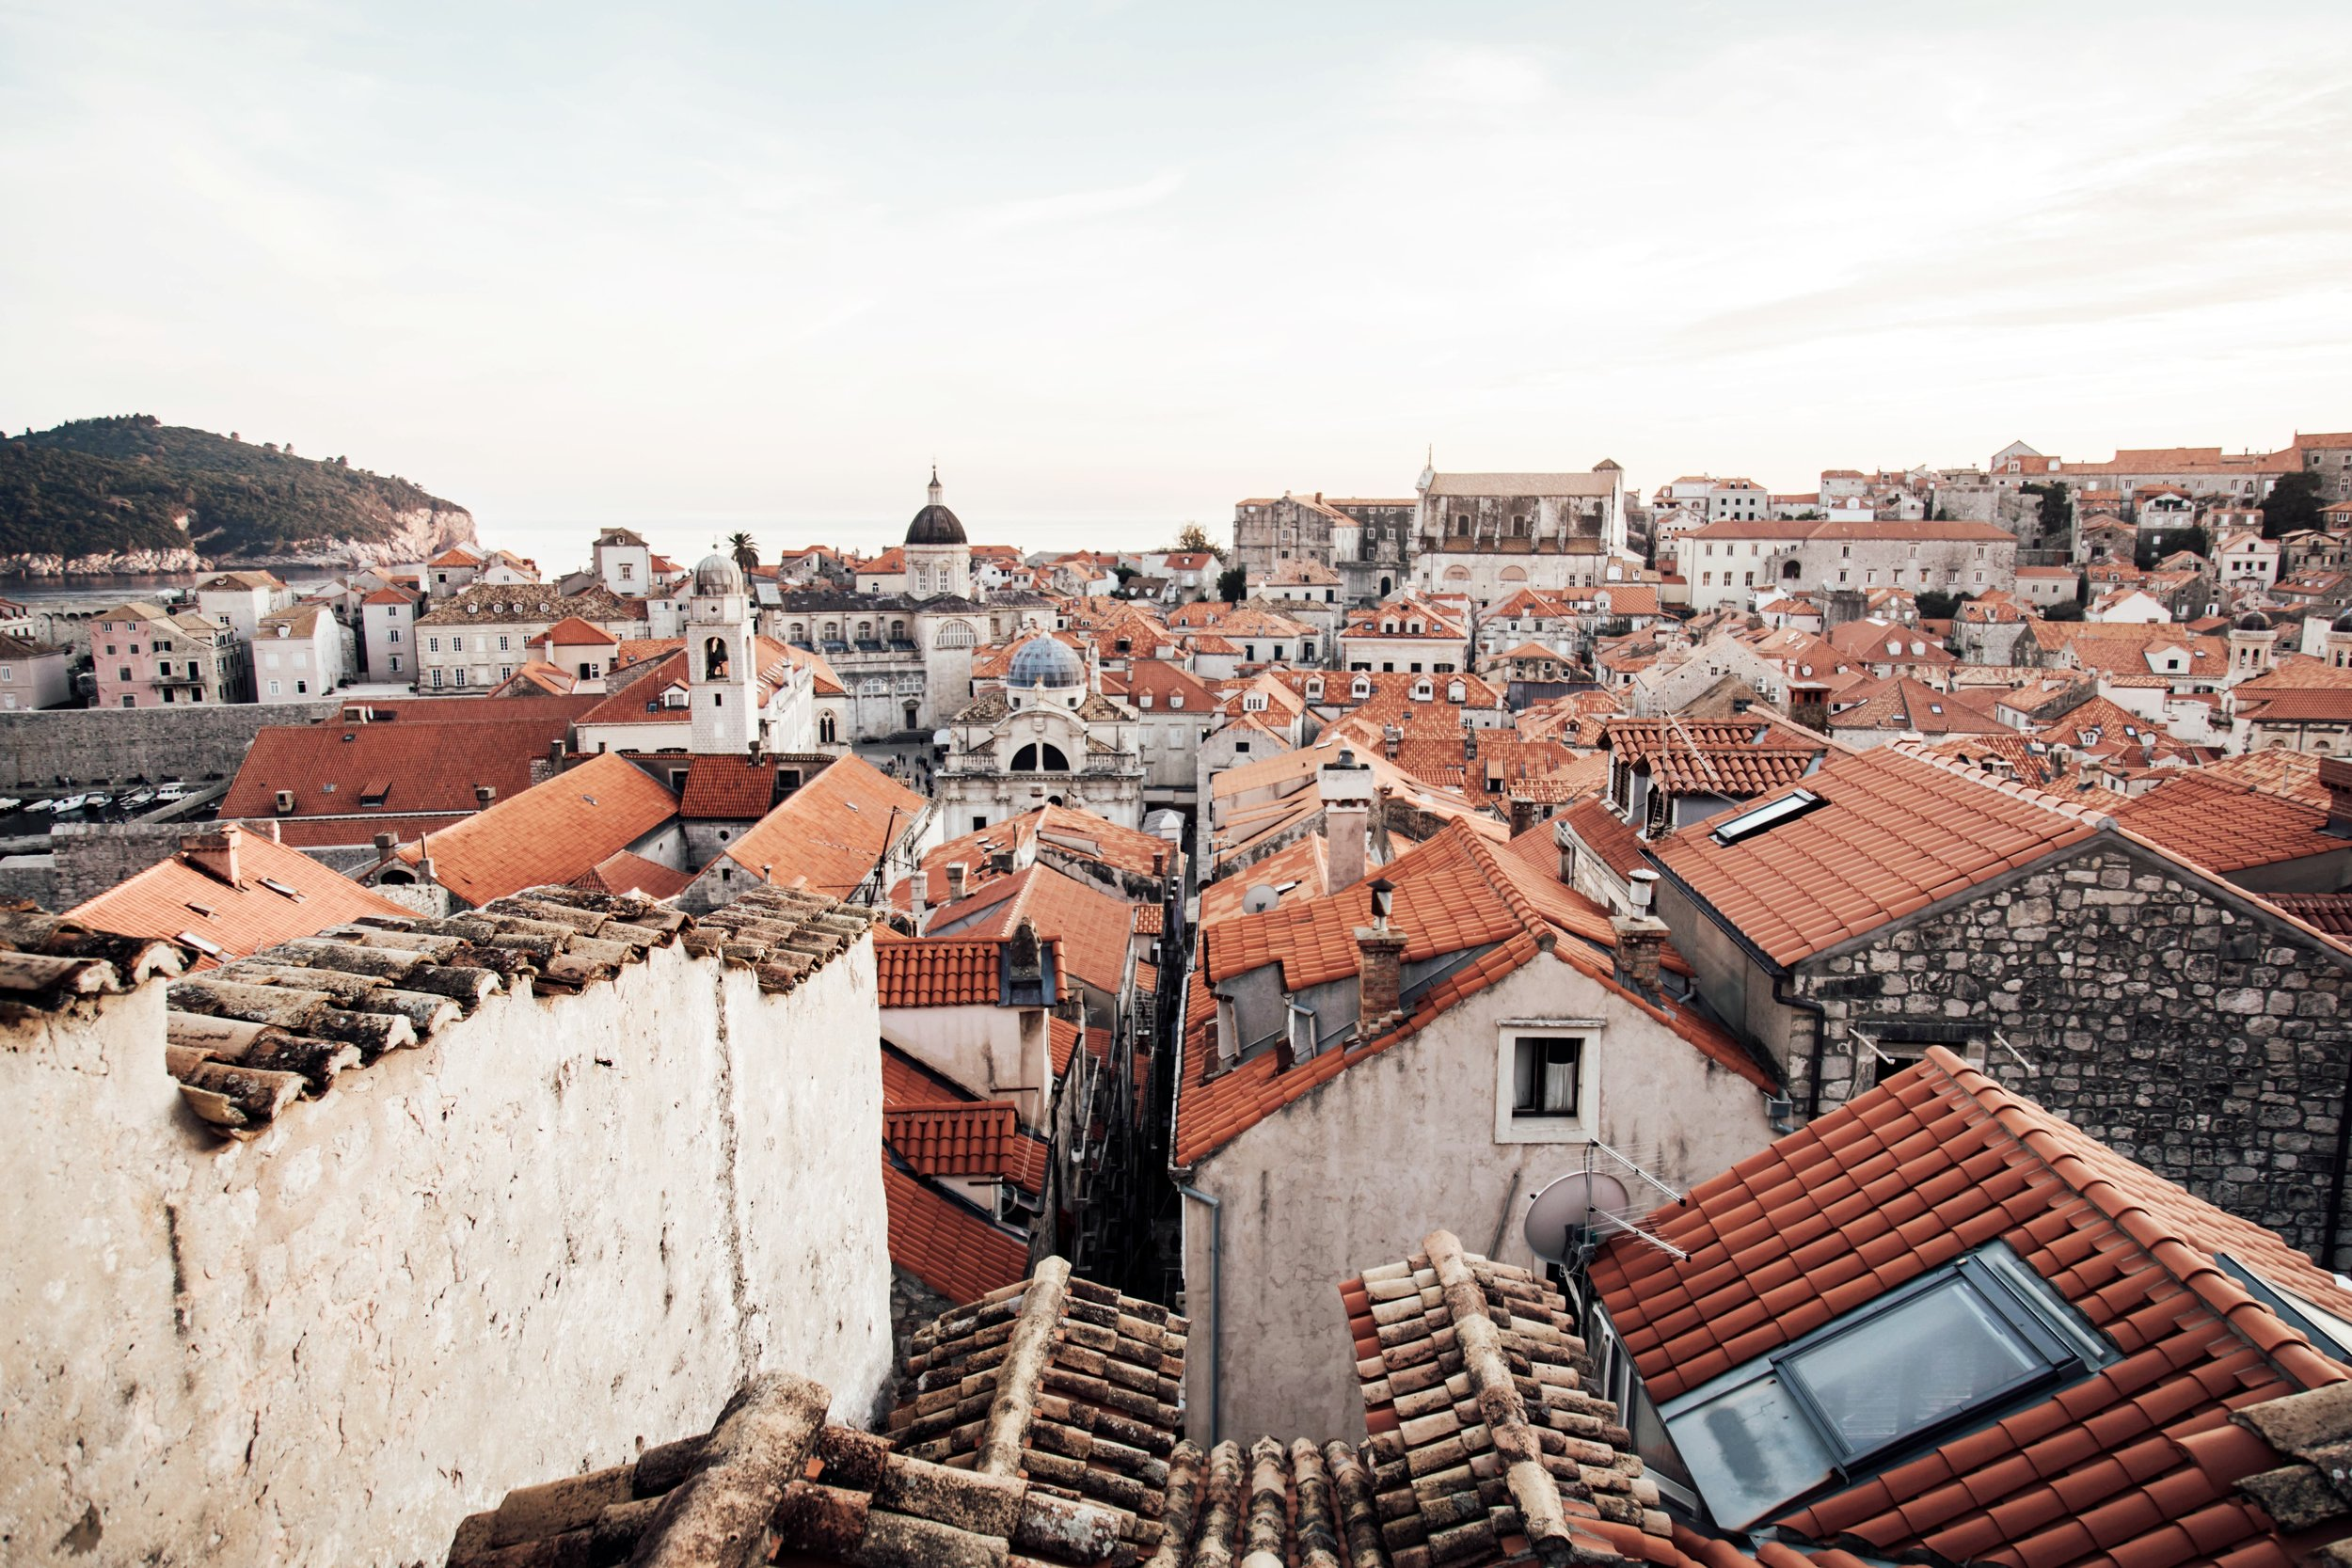 Travel_Photography_1_Dubrovnik-Croatia (104)-min.jpg